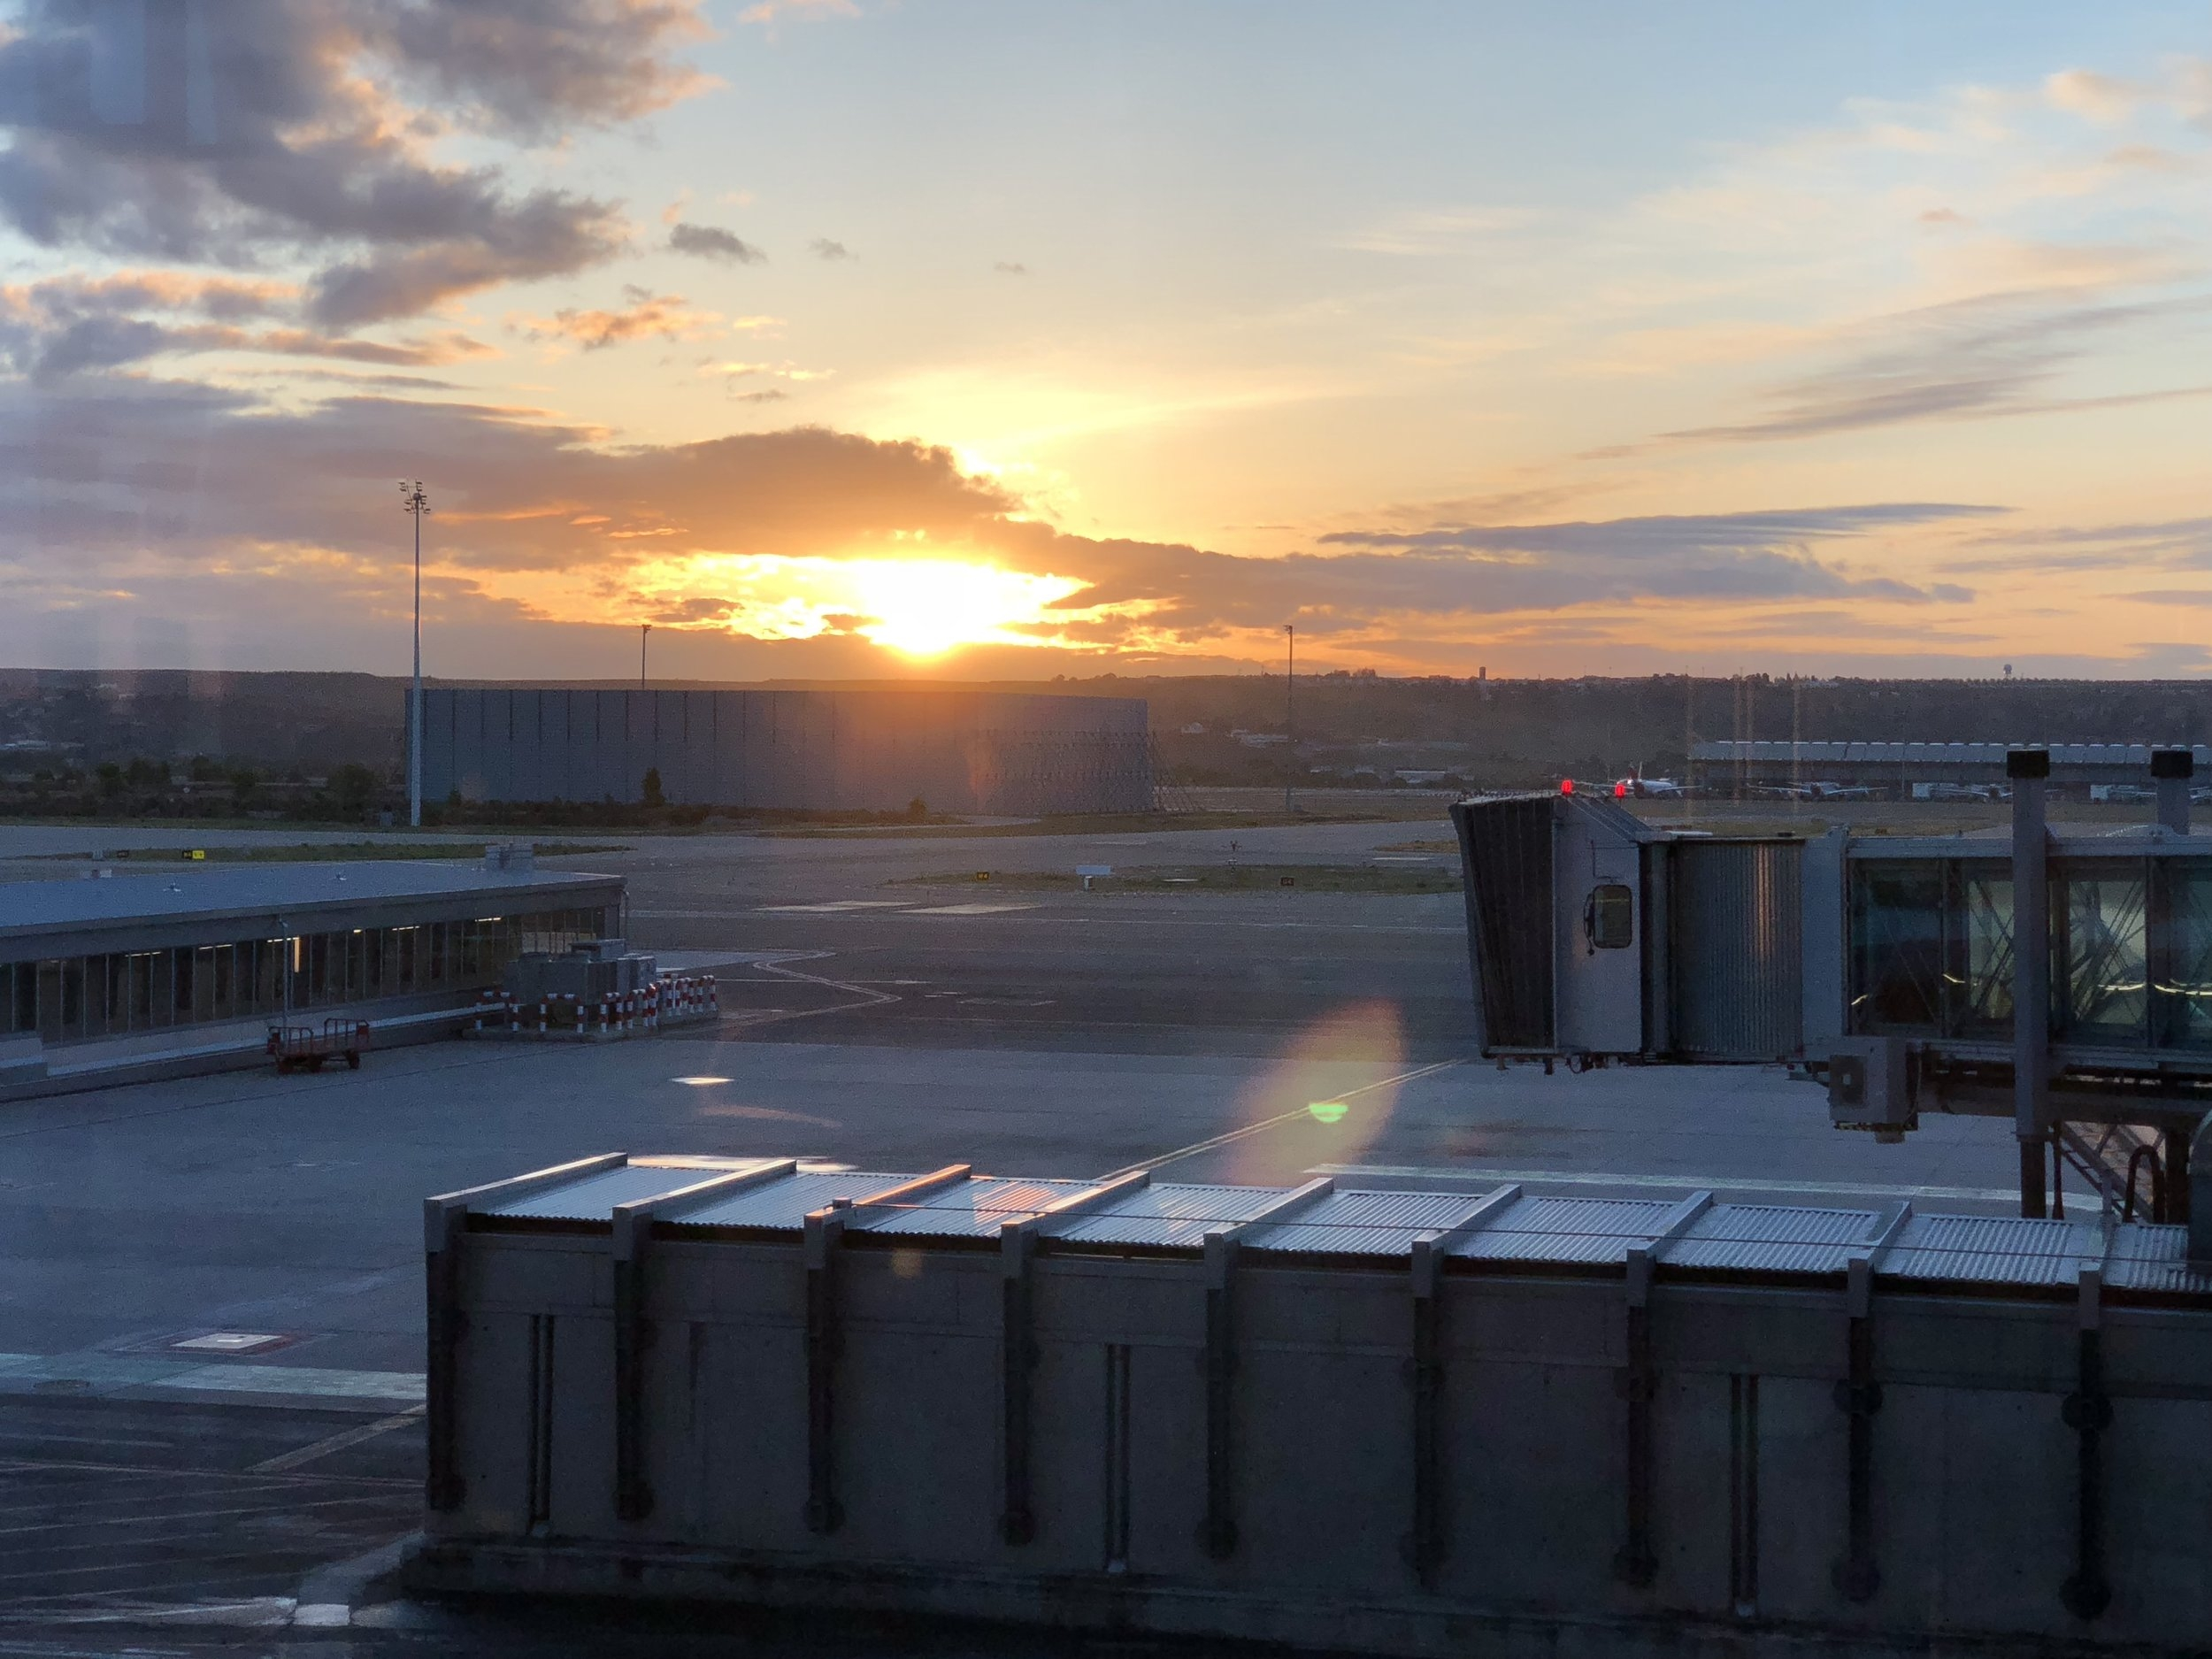 Sunrise in the Madrid airport… almost there.